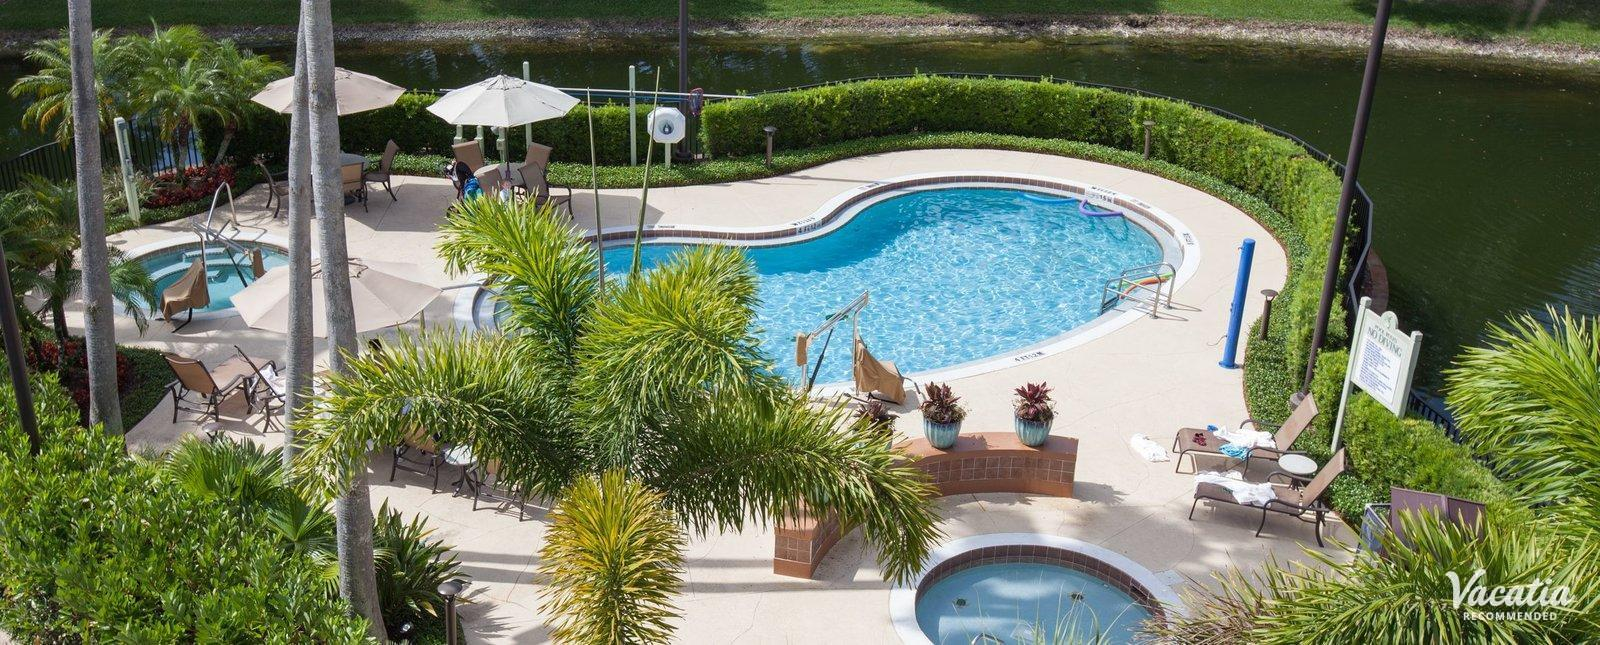 Marriott's Imperial Palms Villas family friendly pools